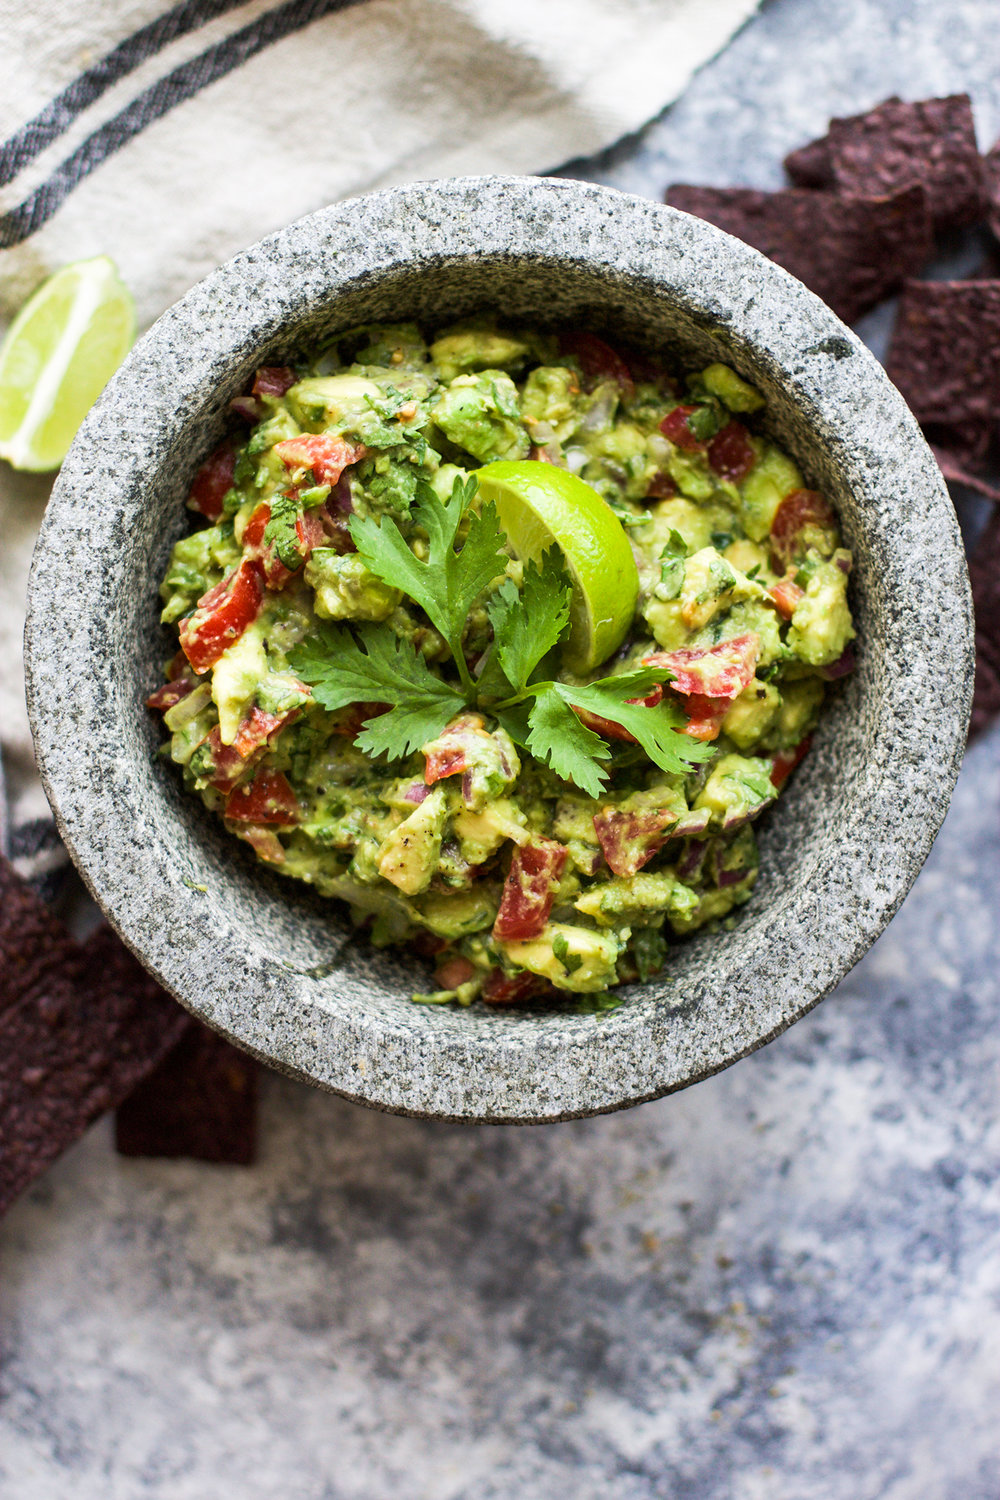 Easy Homemade Guacamole: My Diary of Us